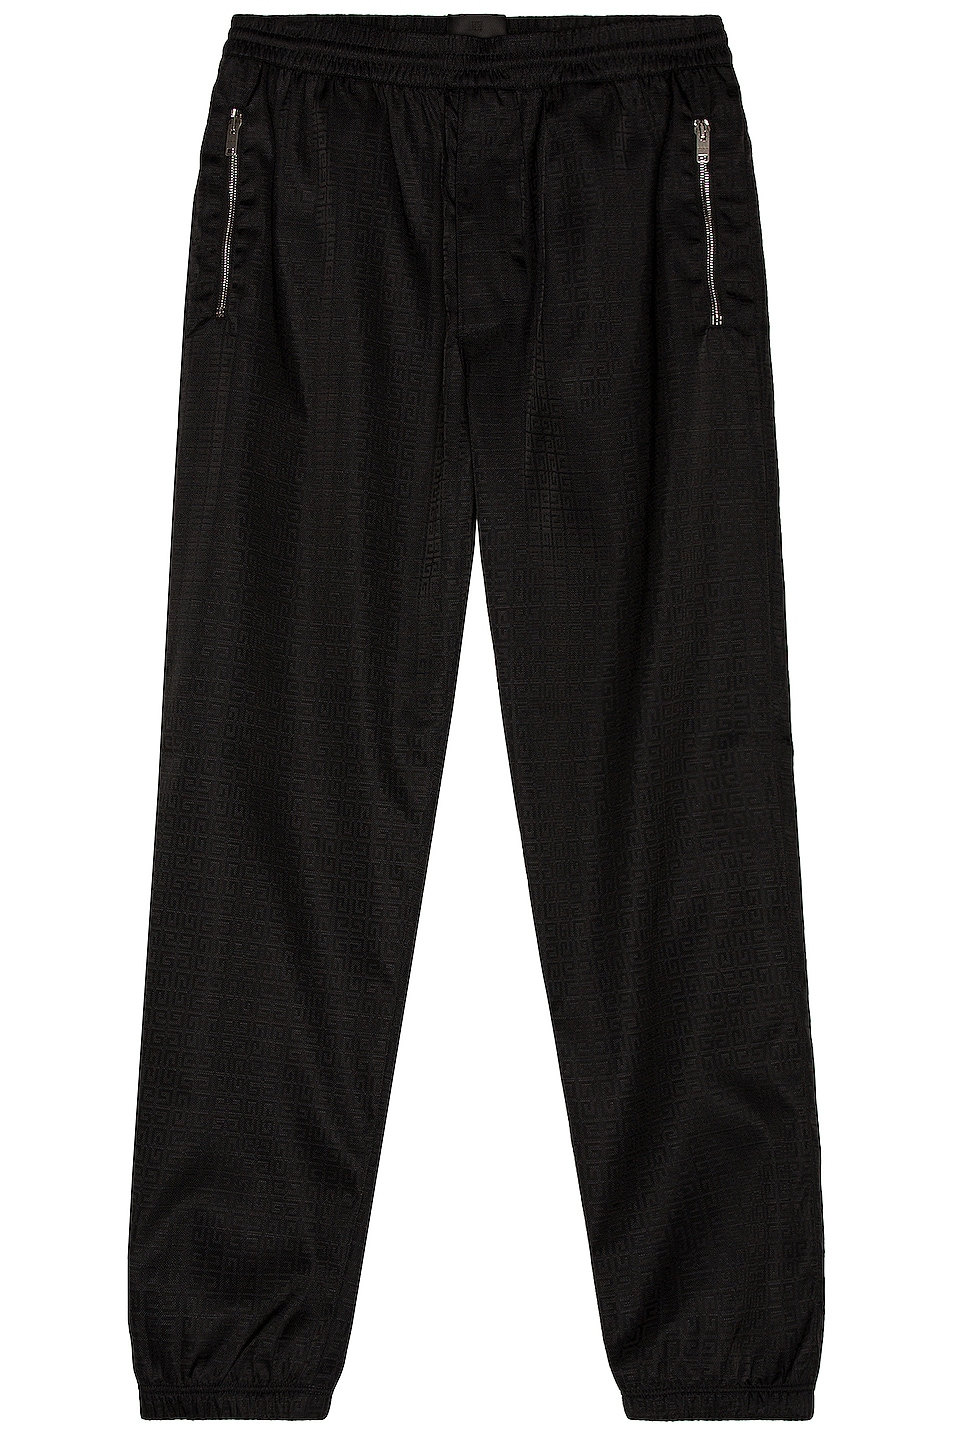 Image 1 of Givenchy 4G Nylon Jacquard Trouser in Black